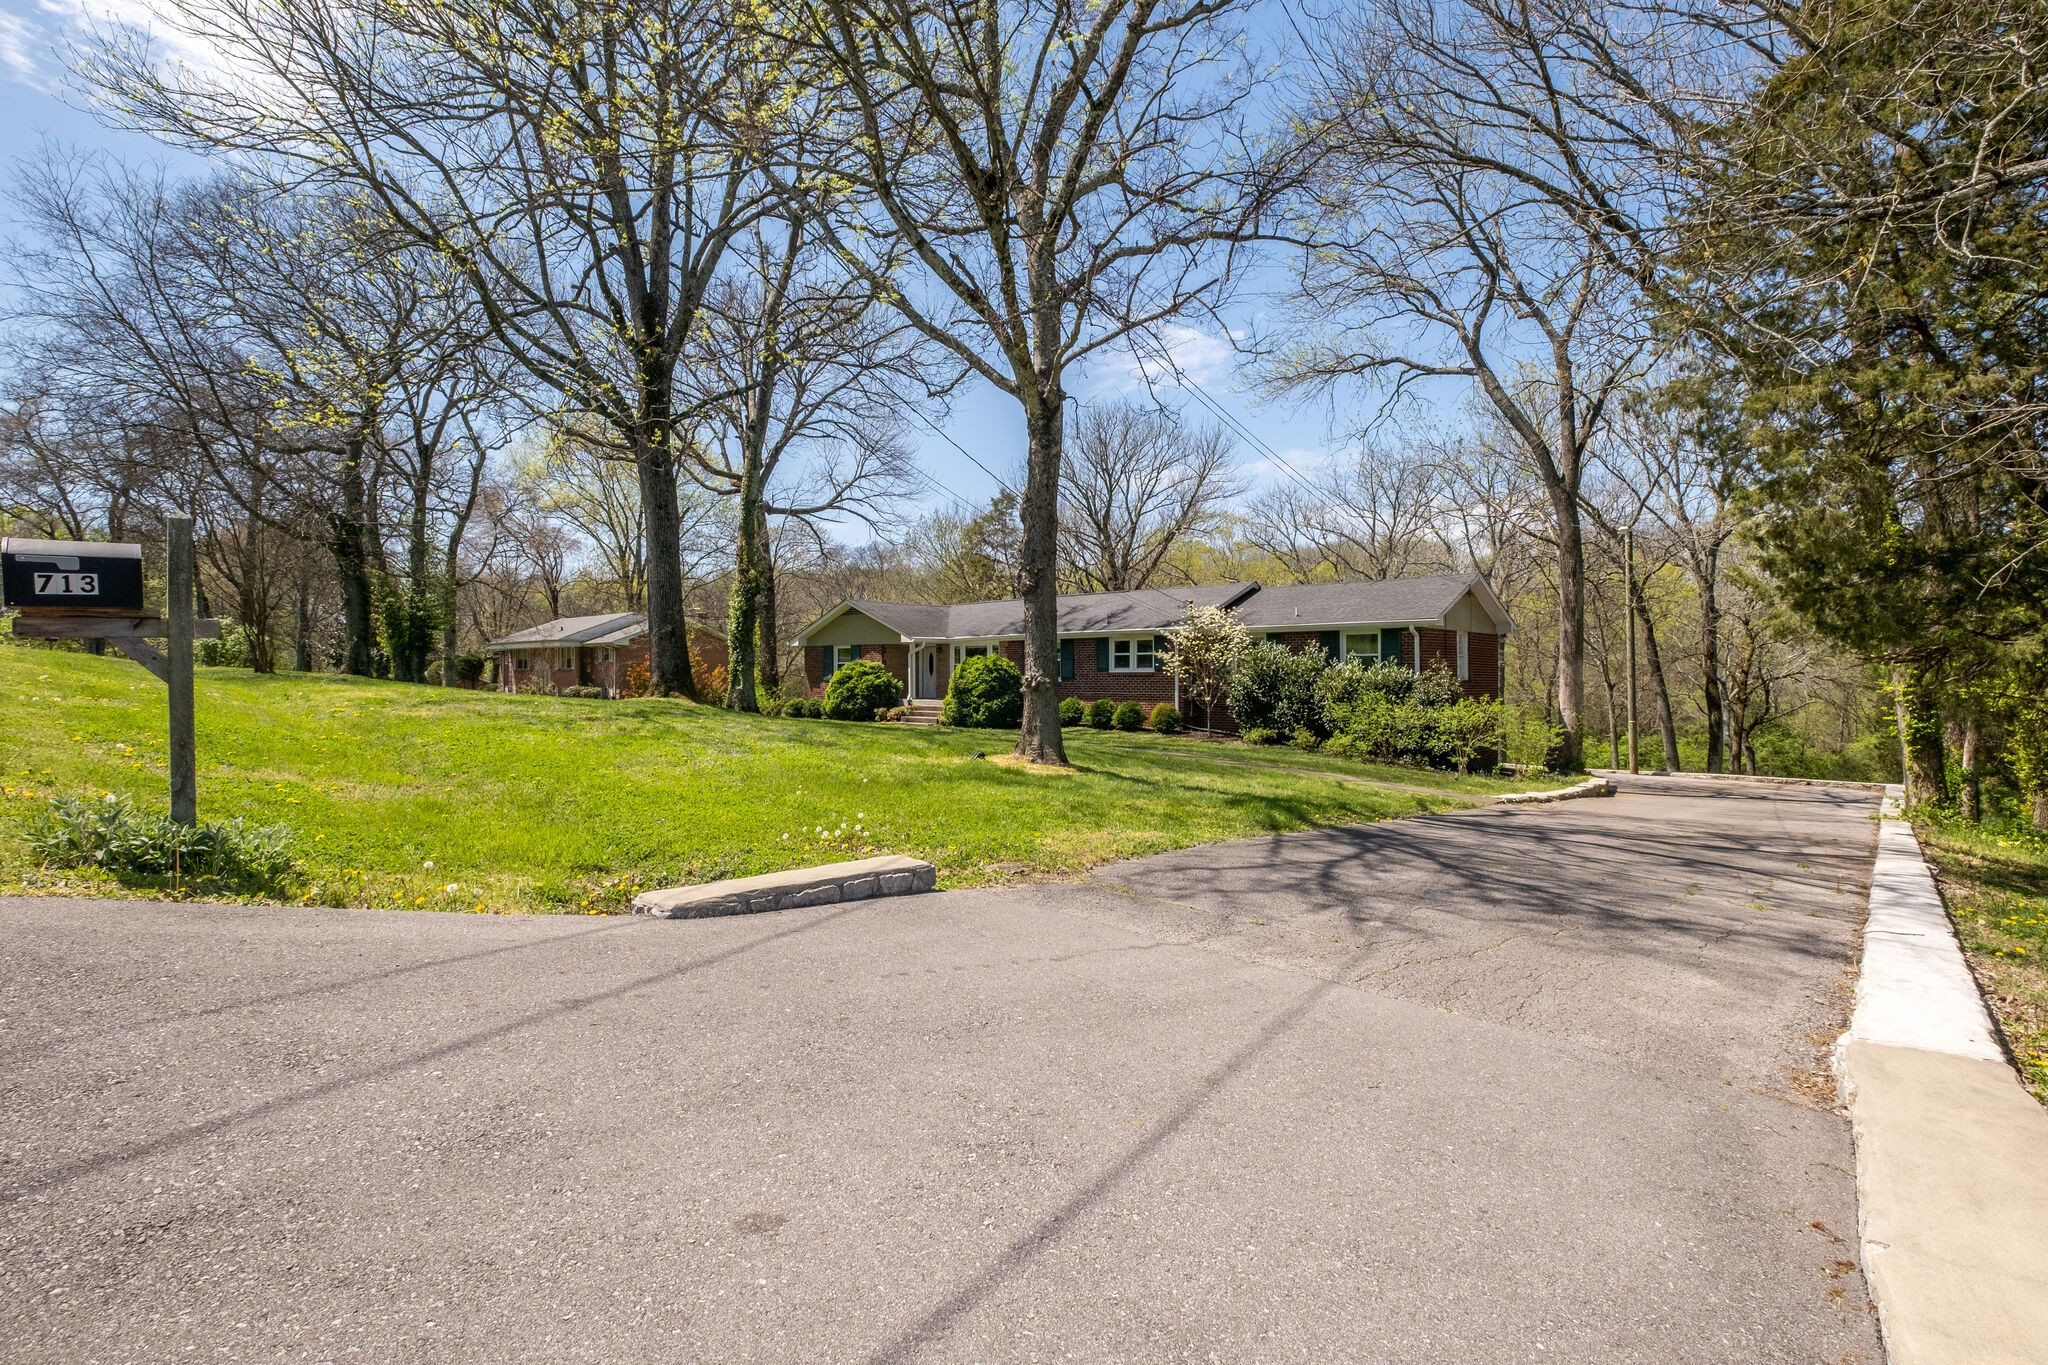 713 S Summerfield Dr Property Photo - Madison, TN real estate listing